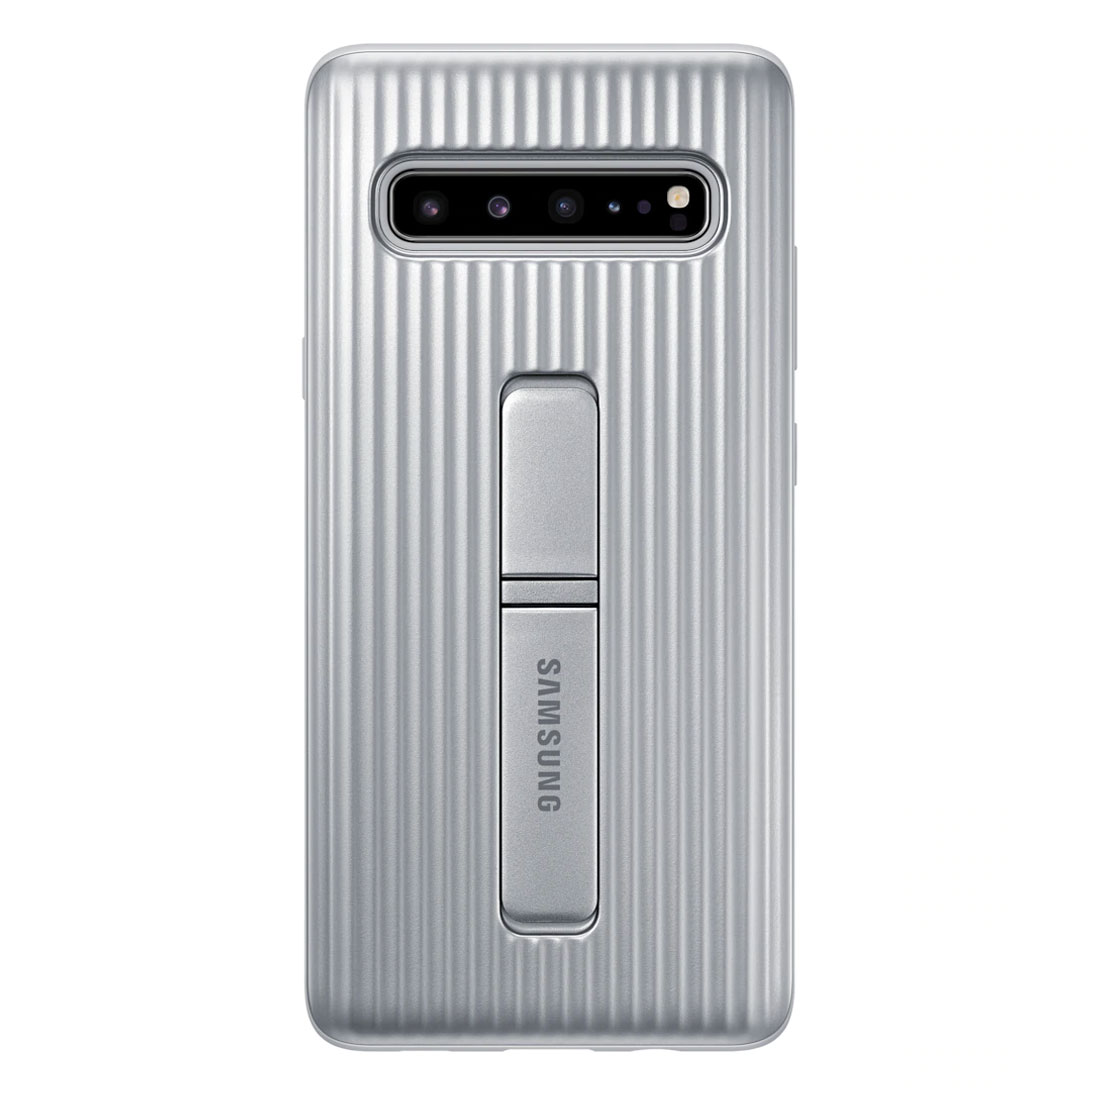 Samsung Galaxy S10 5G Protective Standing Cover - Silver